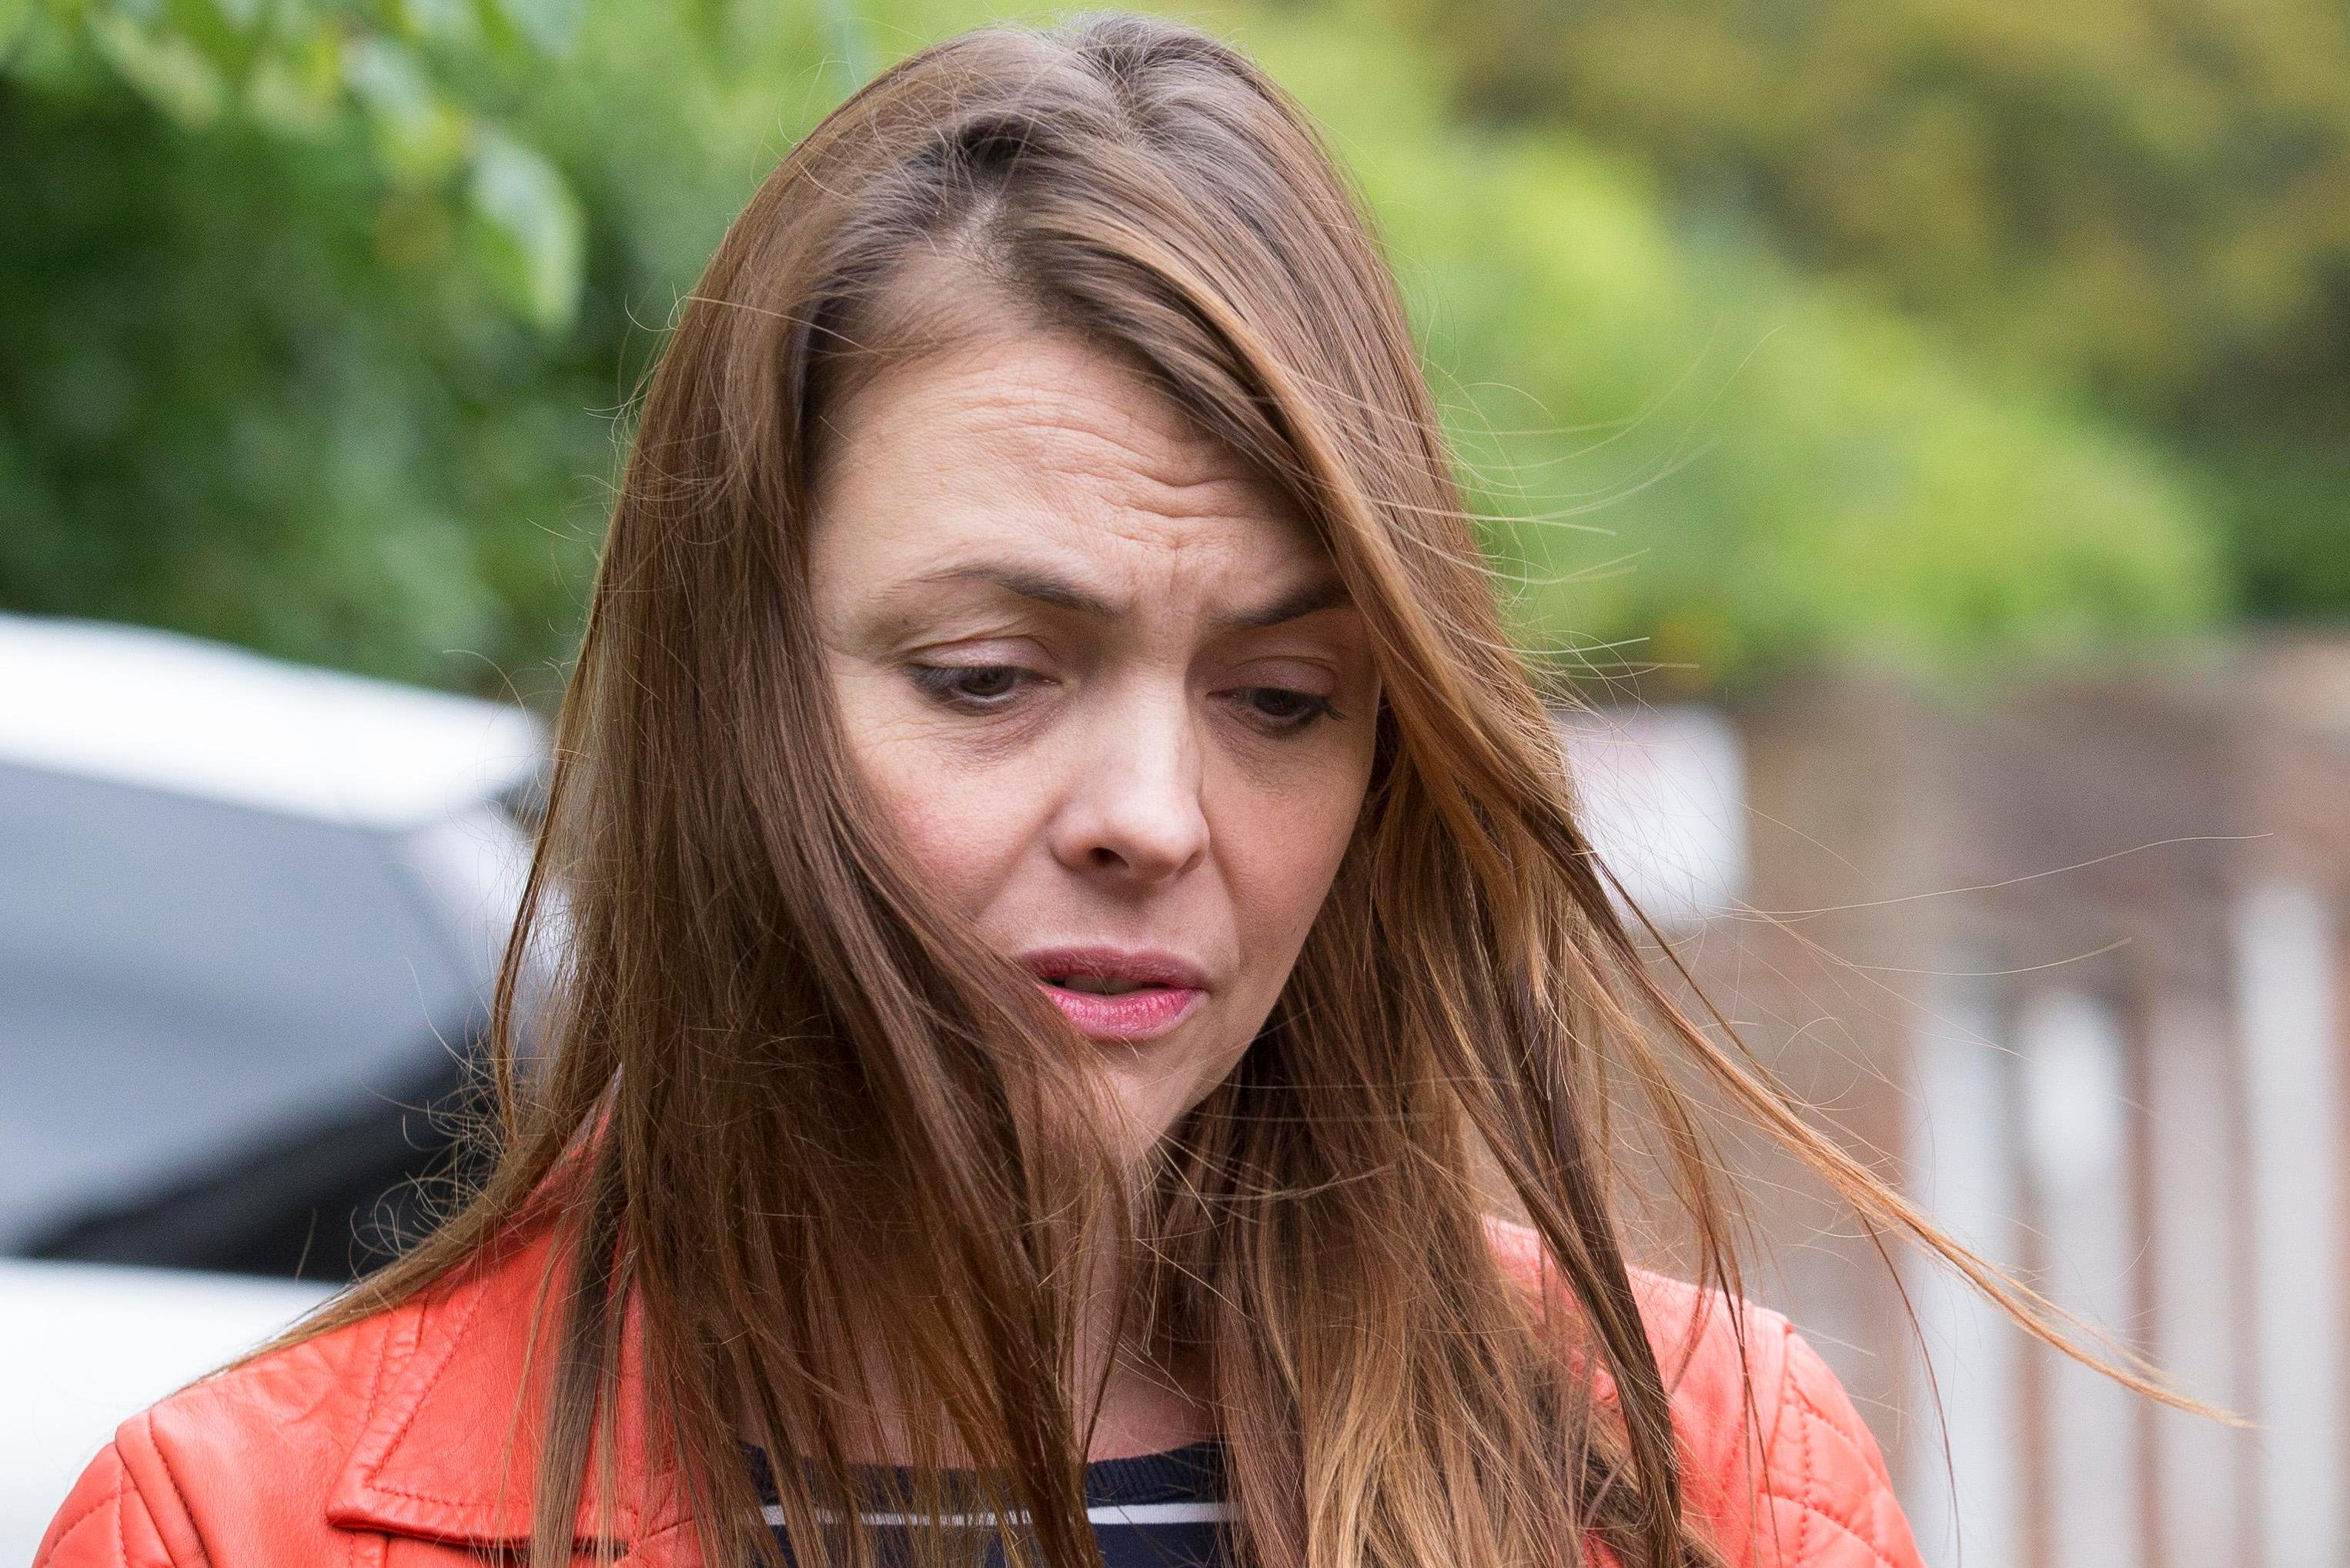 Coronation Street star Kate Ford reveals she is battling endometriosis and admits life with the painful condition is 'not easy'